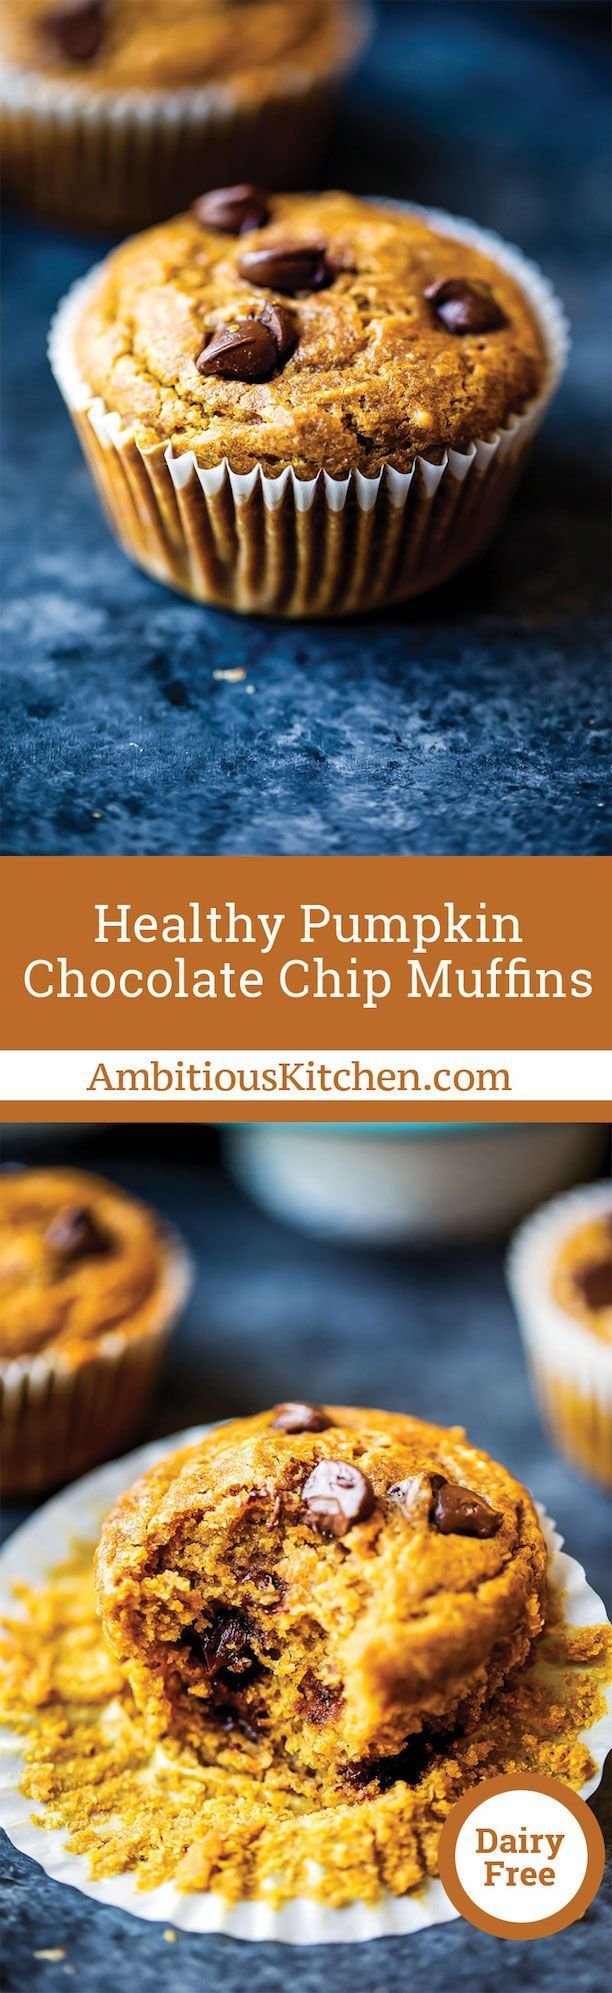 Pumpkin chocolate chip muffins made a little bit healthier. You'll love these satisfying muffins for a snack — freezer friendly and great for kids!